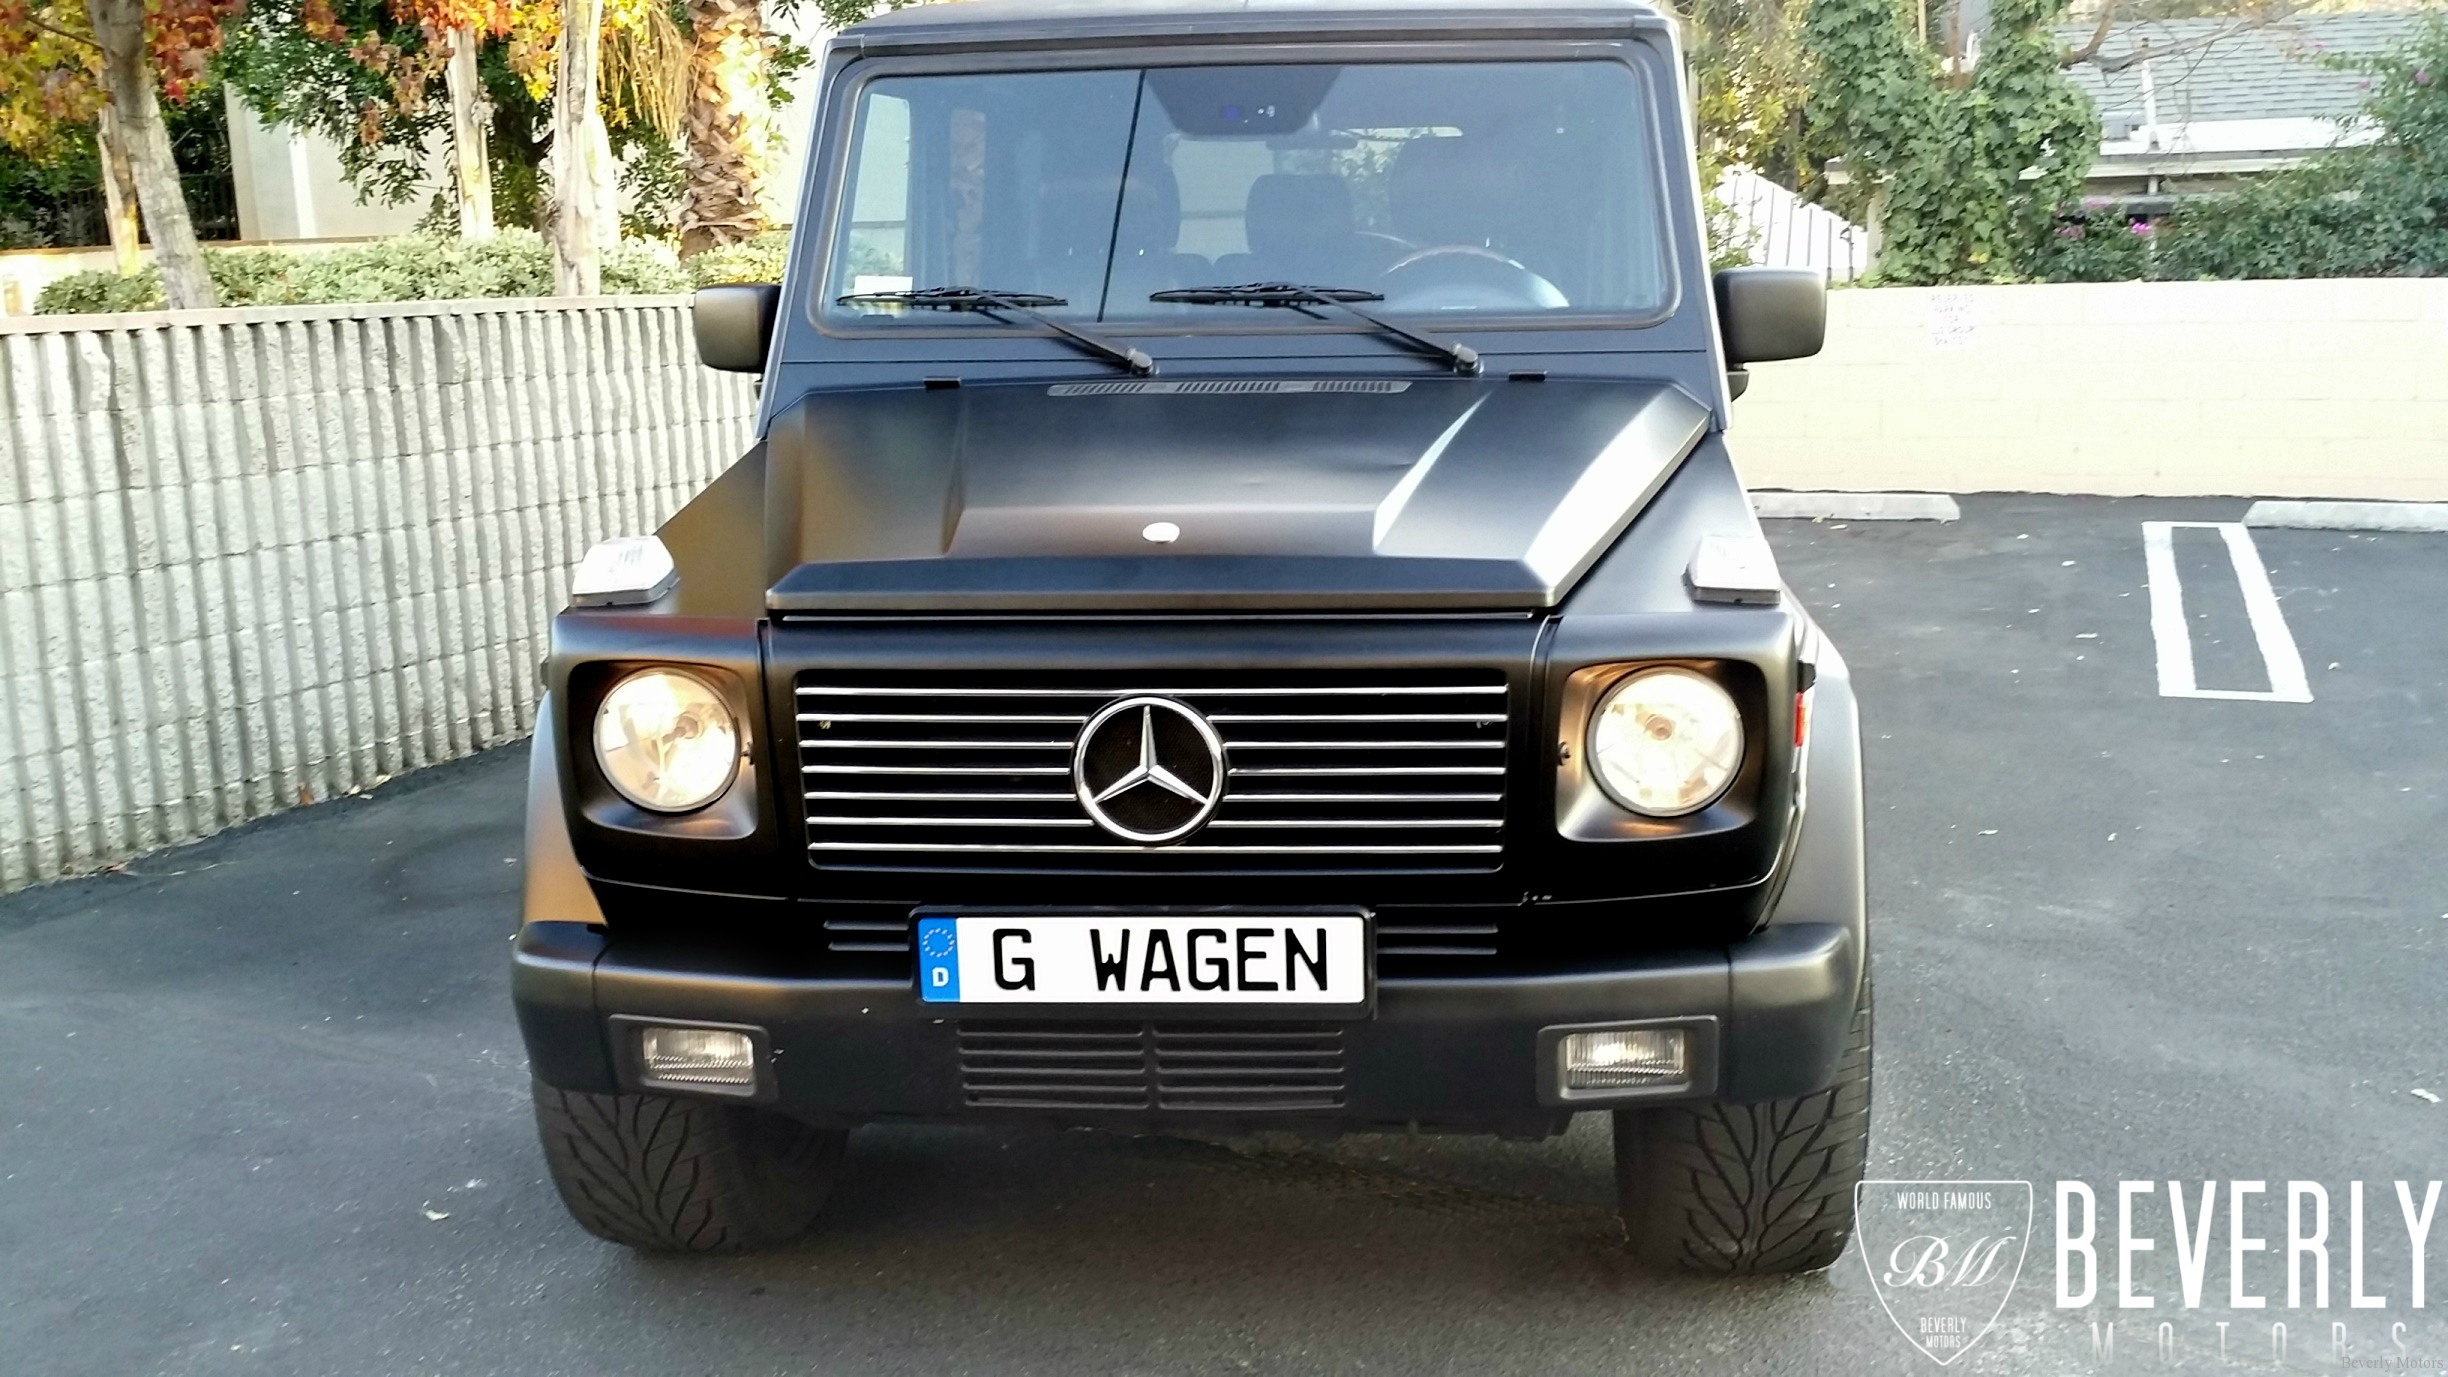 2002 mercedes benz g500 for sale by beverly motors inc for 2013 mercedes benz g class for sale